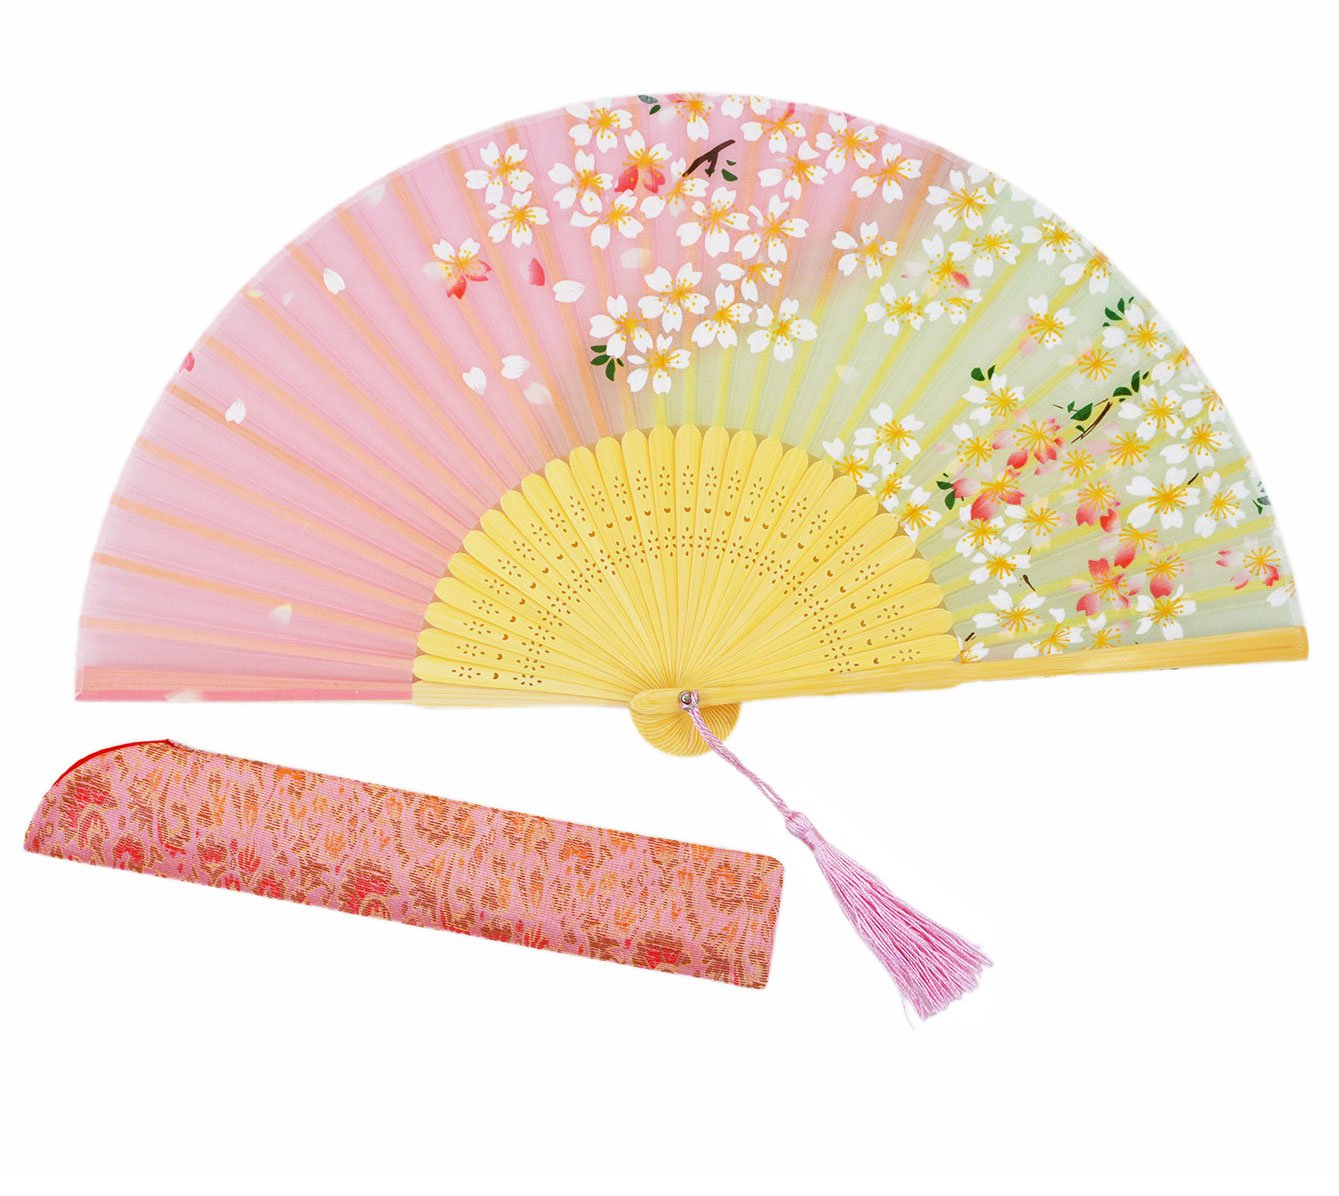 Meifan High Quality Women Hand Held Silk Folding Fan,Chinese / Japanese Vintage Retro Style For Women Ladys Girls (Pink)